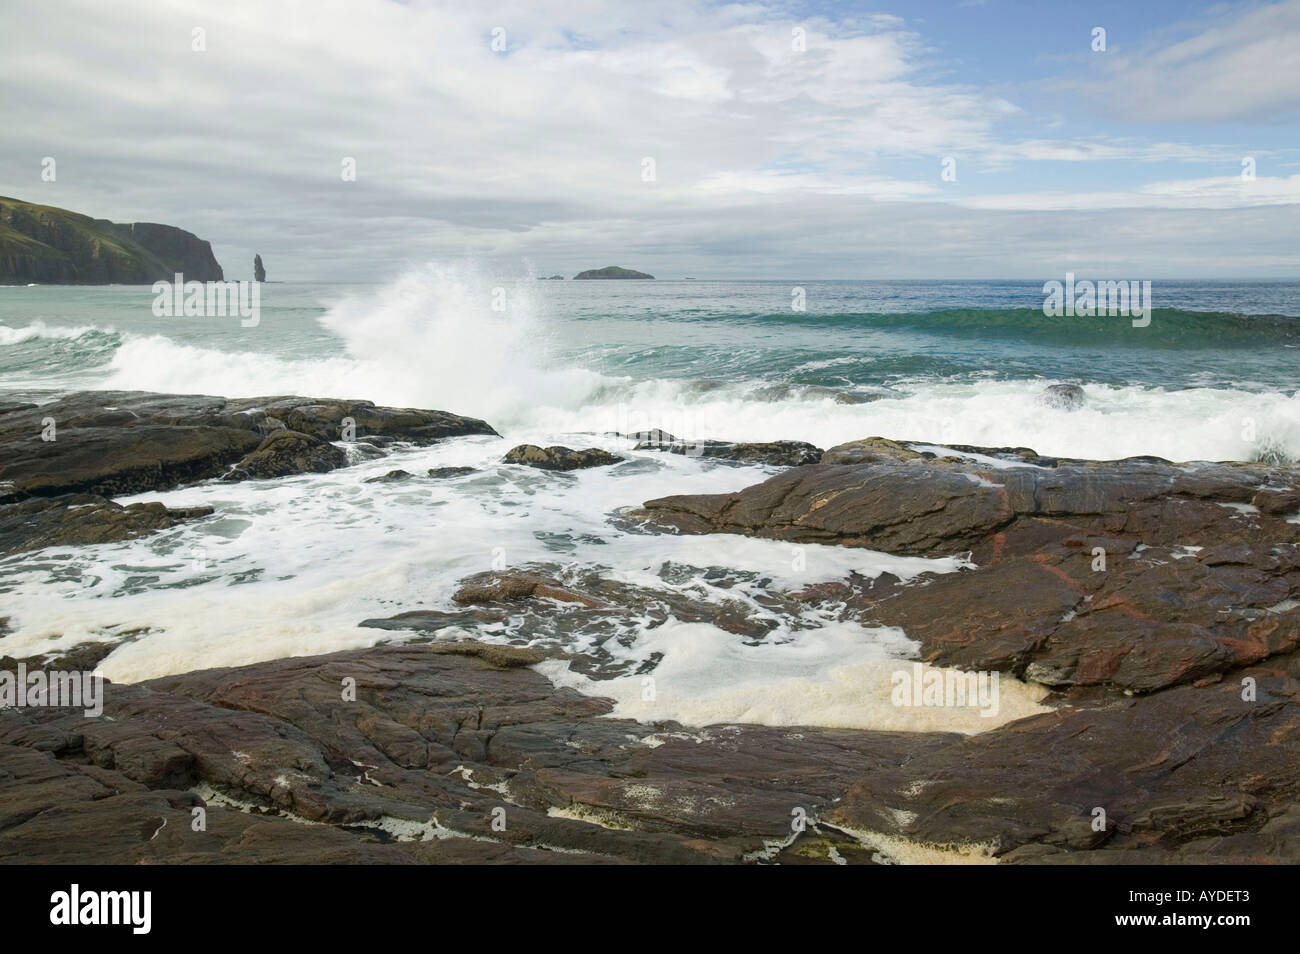 waves crashing against a rocky outcrop in Sandwood Bay, Sutherland, Scotland, UK - Stock Image